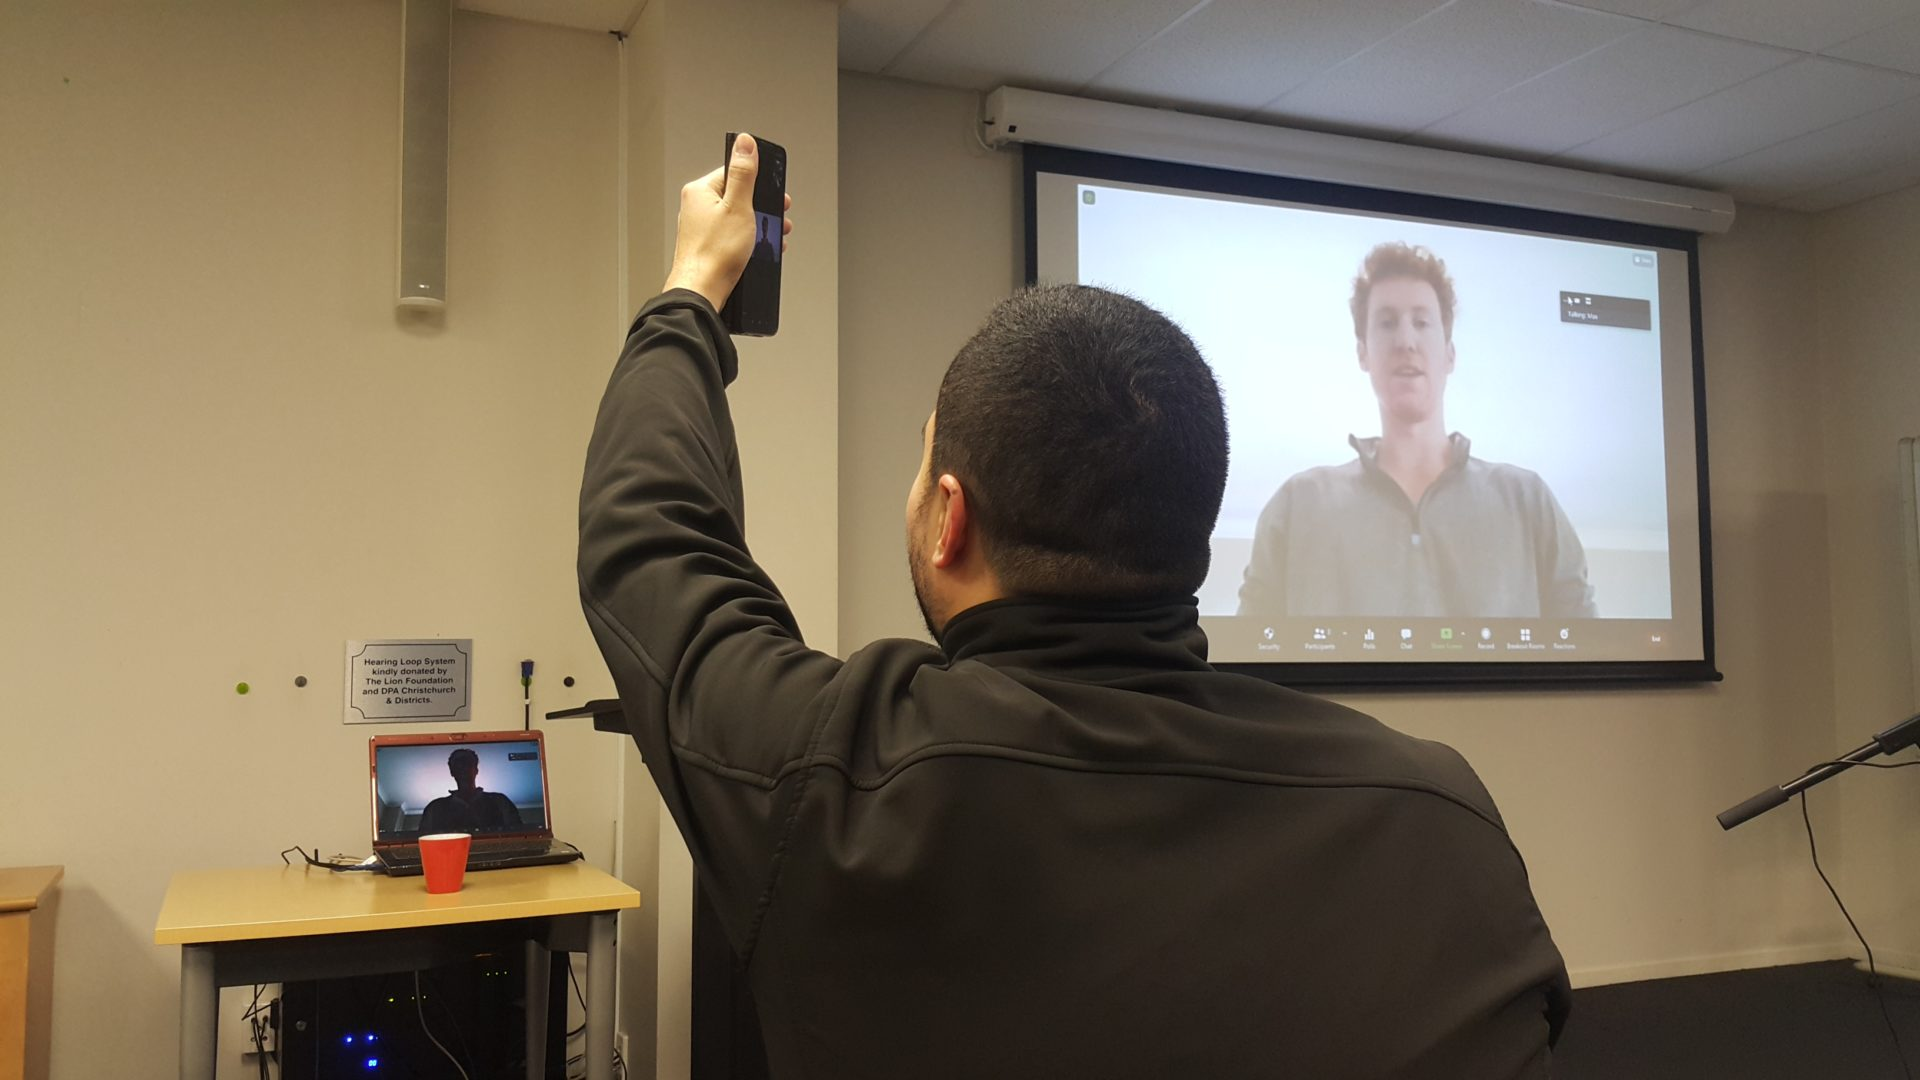 Man taking photo of person presenting on a large screen via Zoom